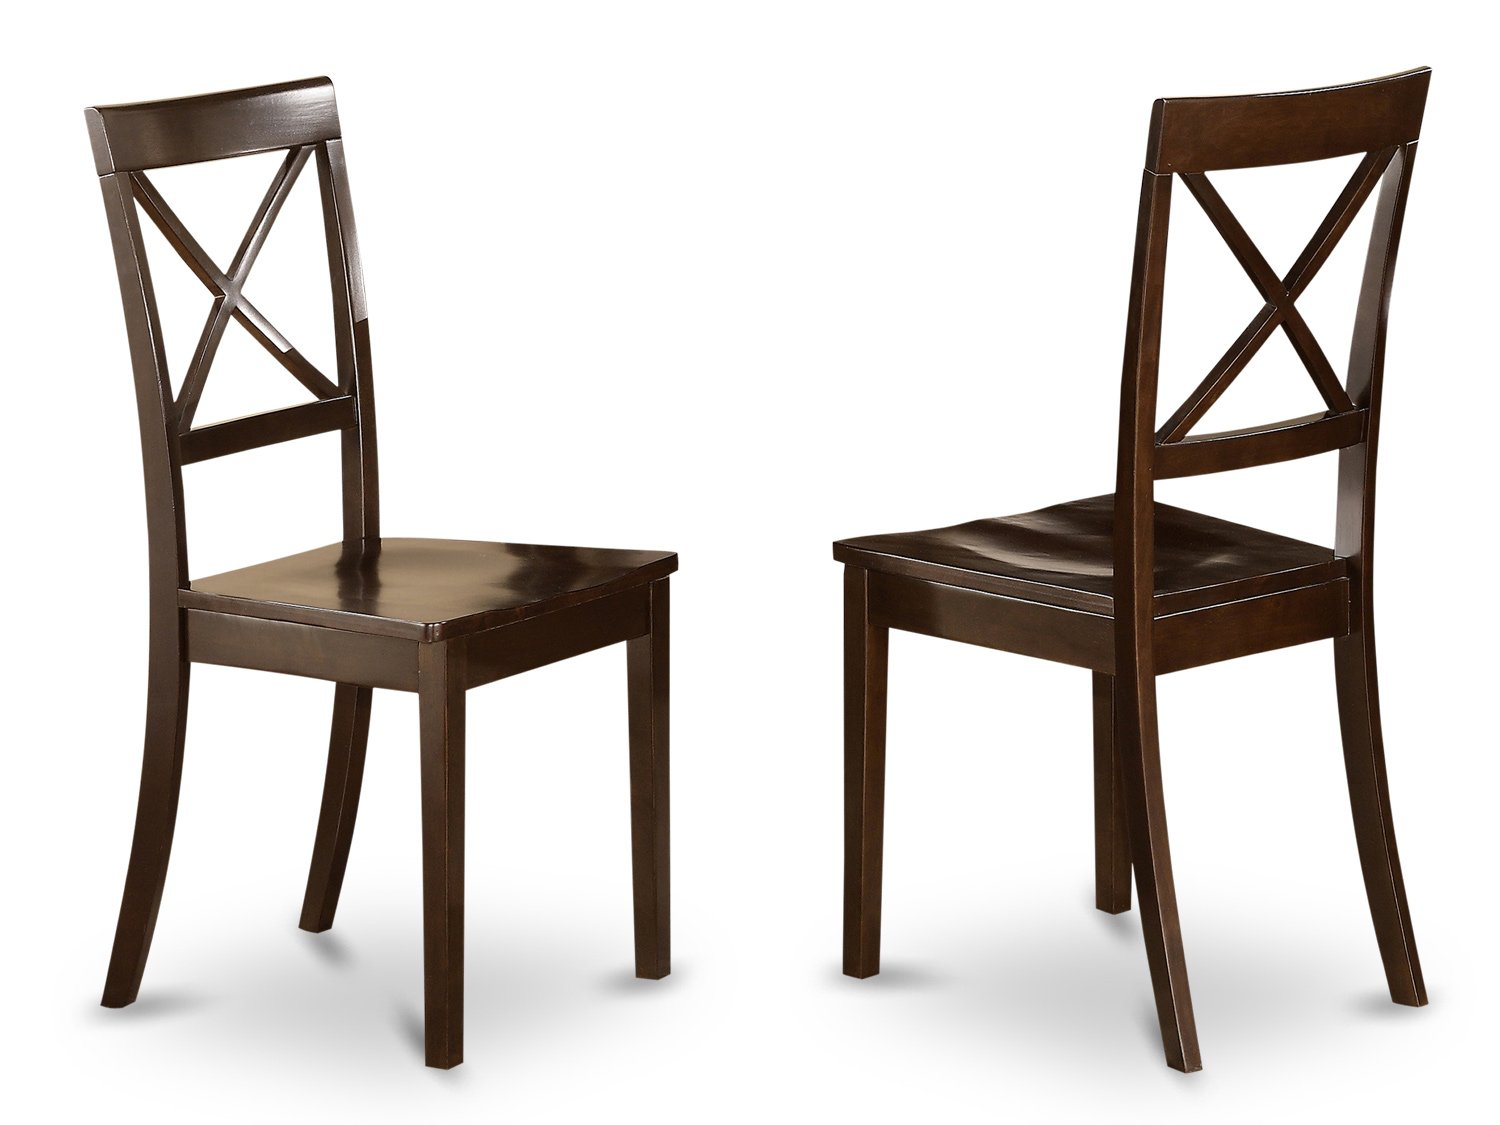 Set of 2 Boston dining room chairs in Cappuccino finish.